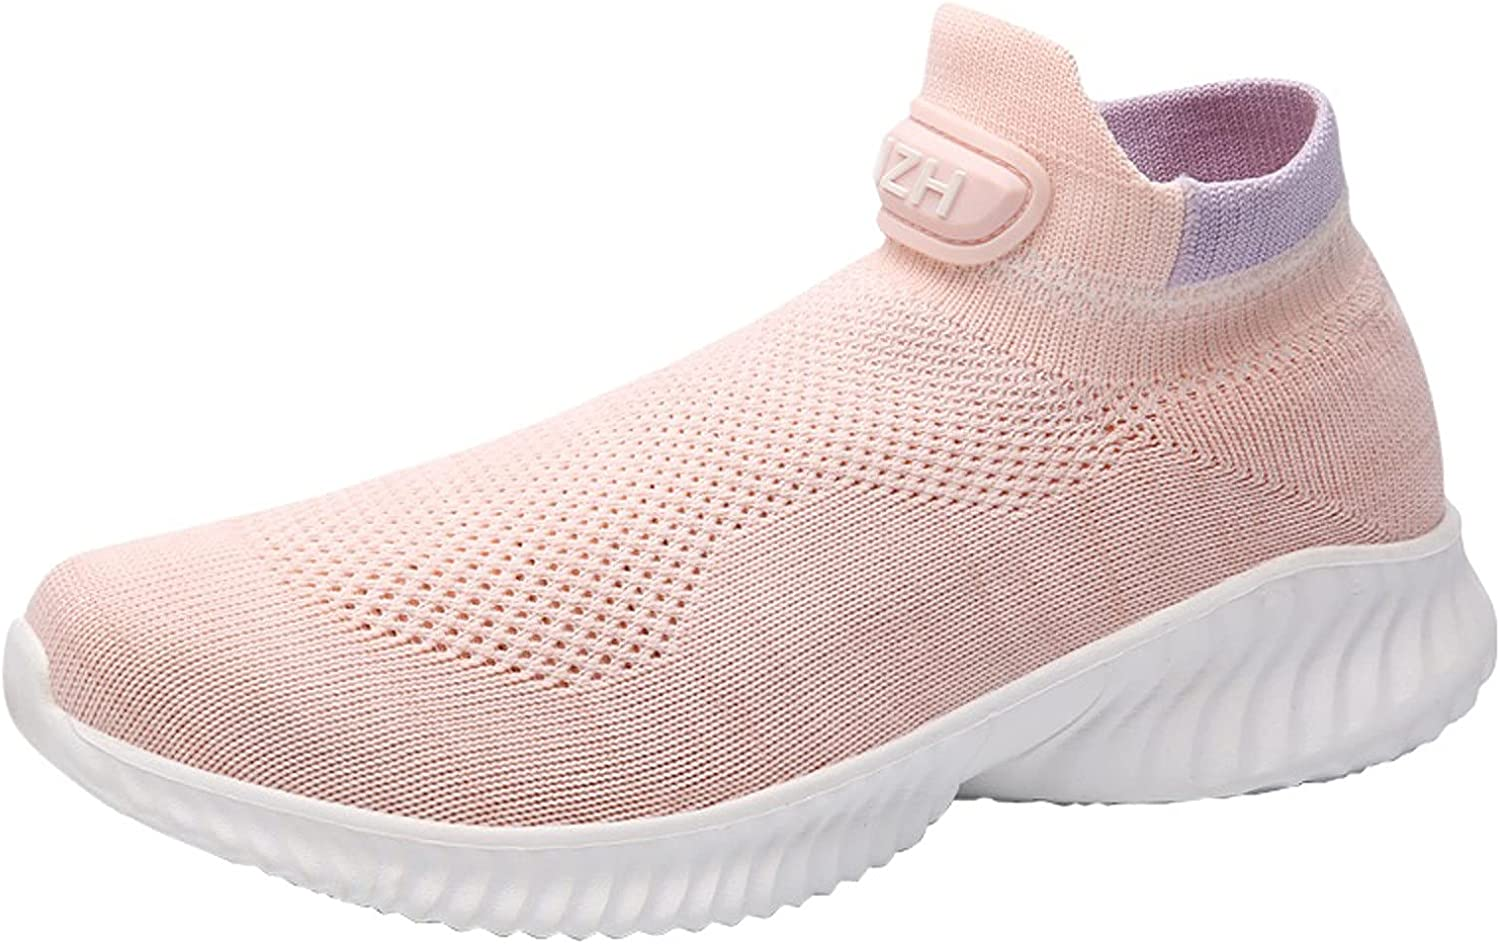 DKBL Unisex Sneaker Women Slip on Sneakers Breathable Cushioning Running Shoes Lightweight Sports Shoes Outdoor Walking Shoes Fashion Mesh Casual Road Running Shoes